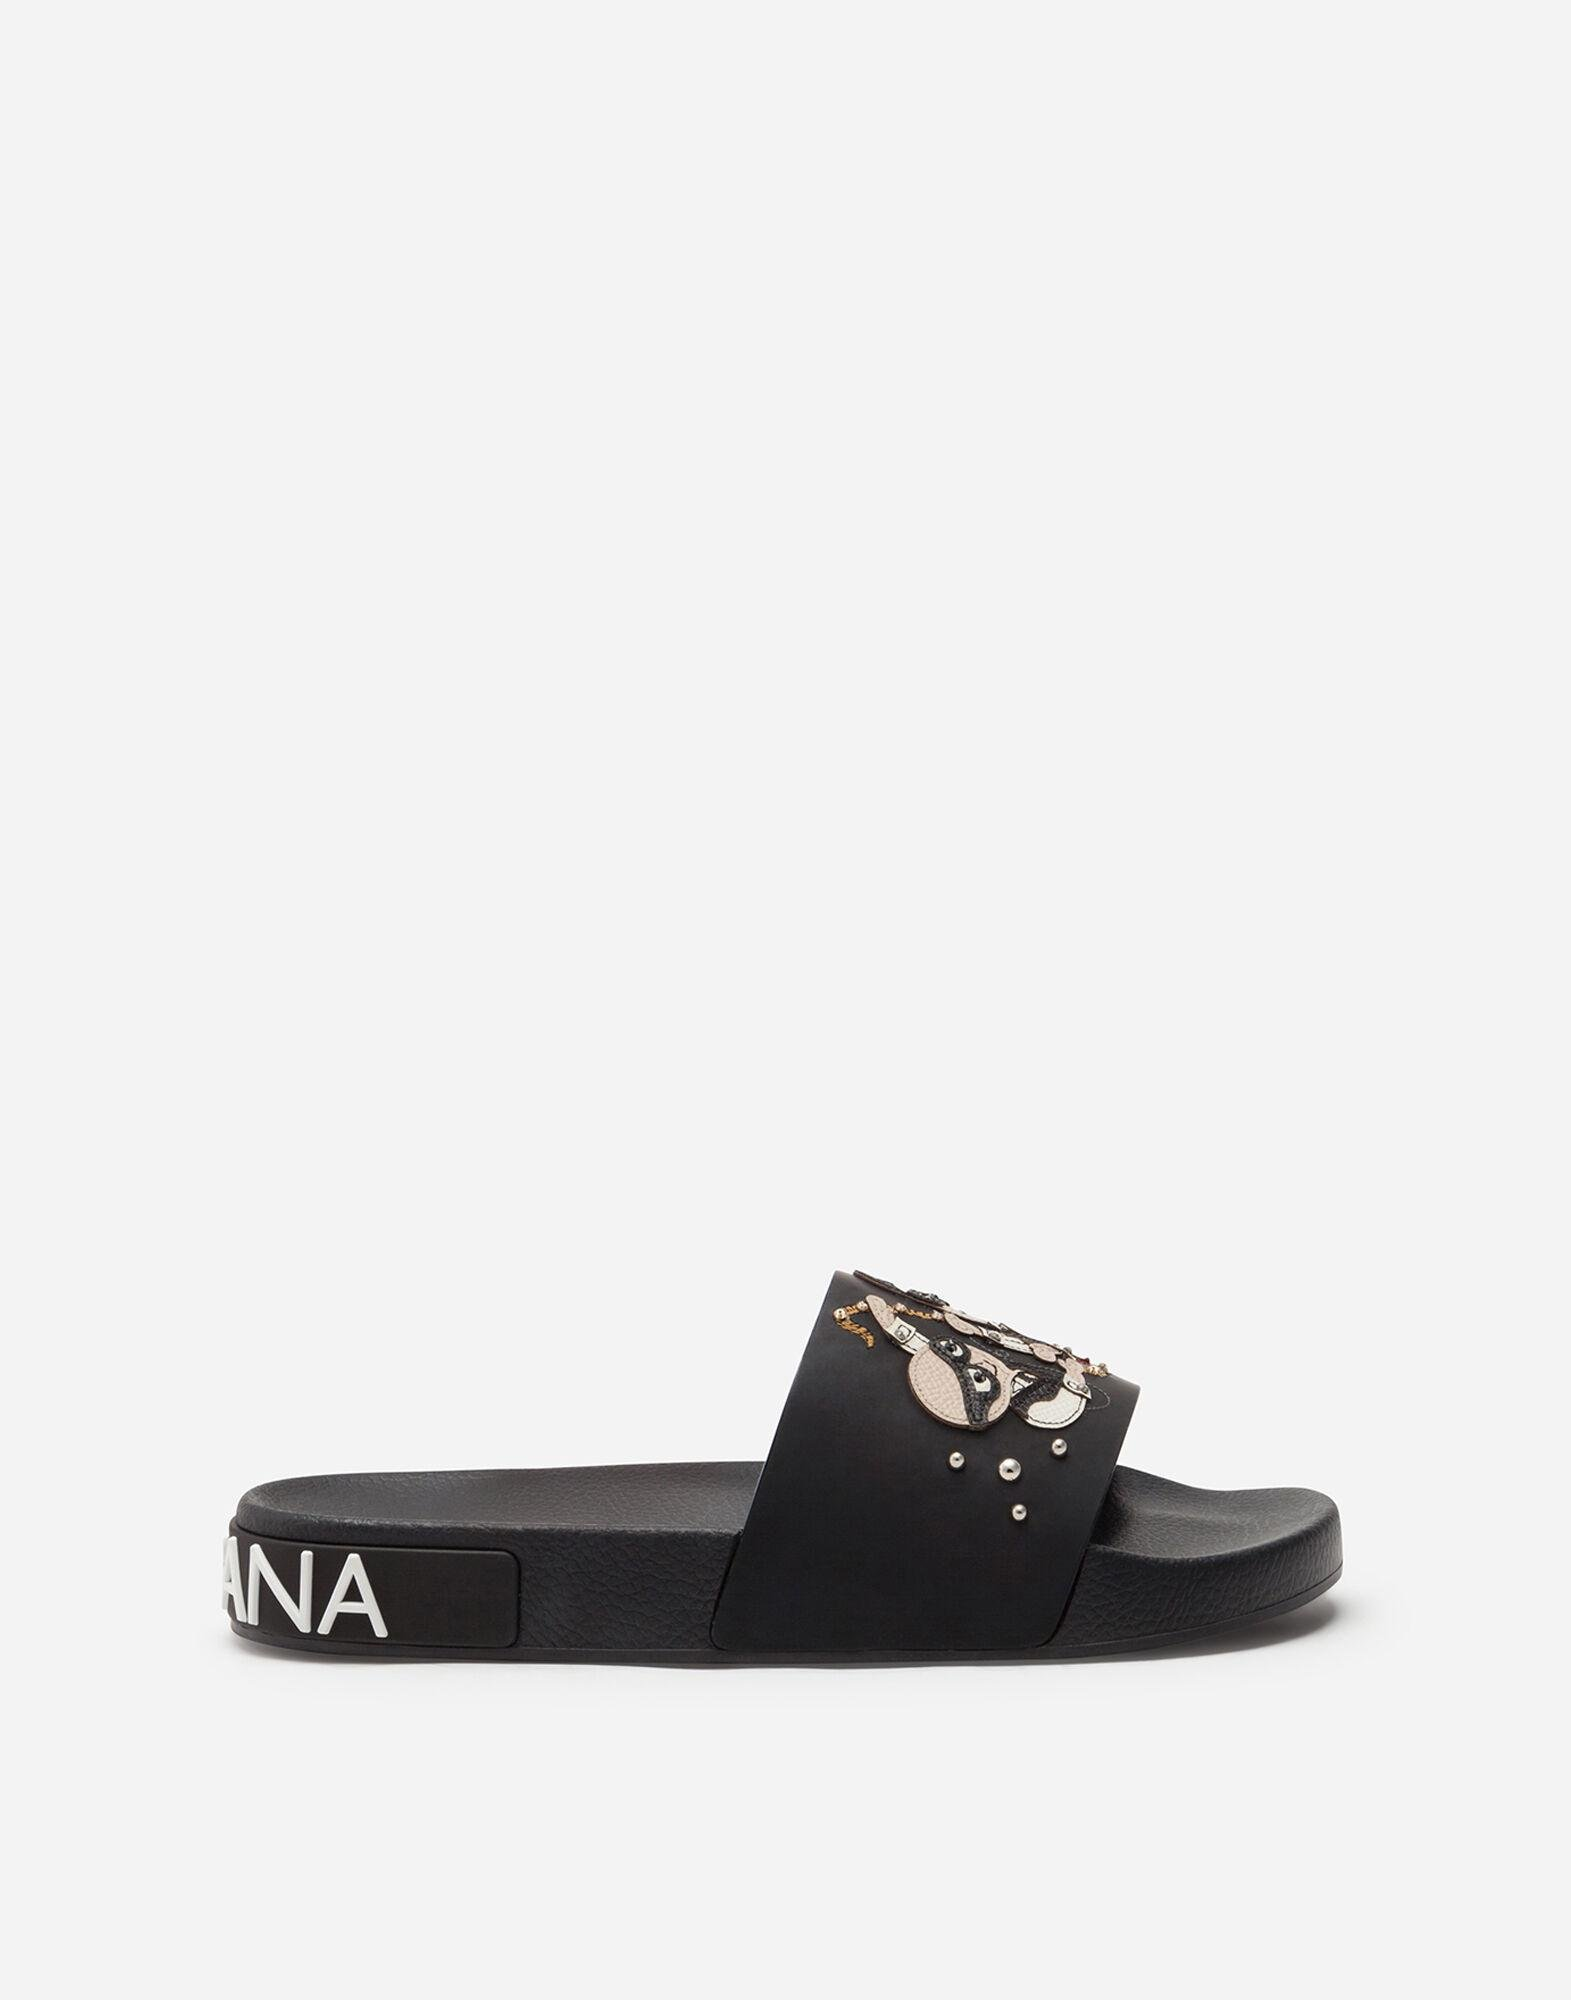 Rubber beachwear sliders with stylist patches